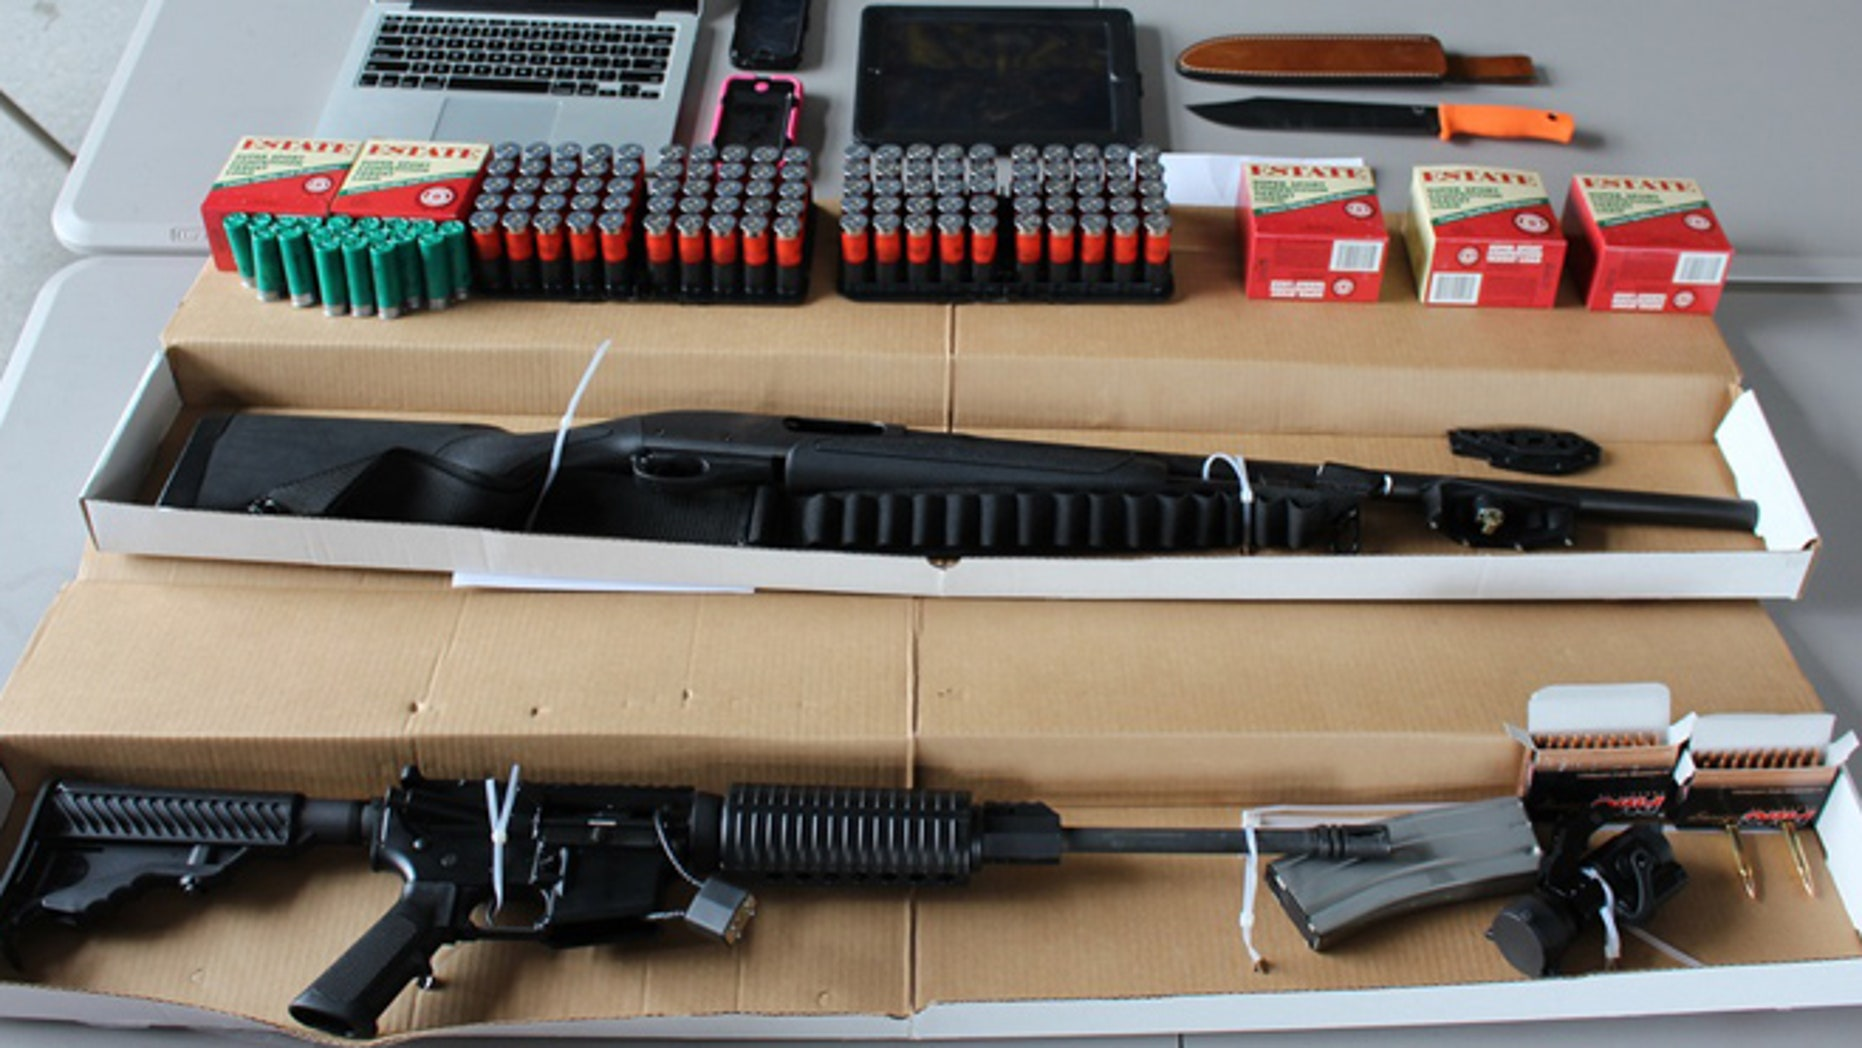 Weapons and ammunition were recovered from the vehicle of two individuals suspected of making threats of violence.